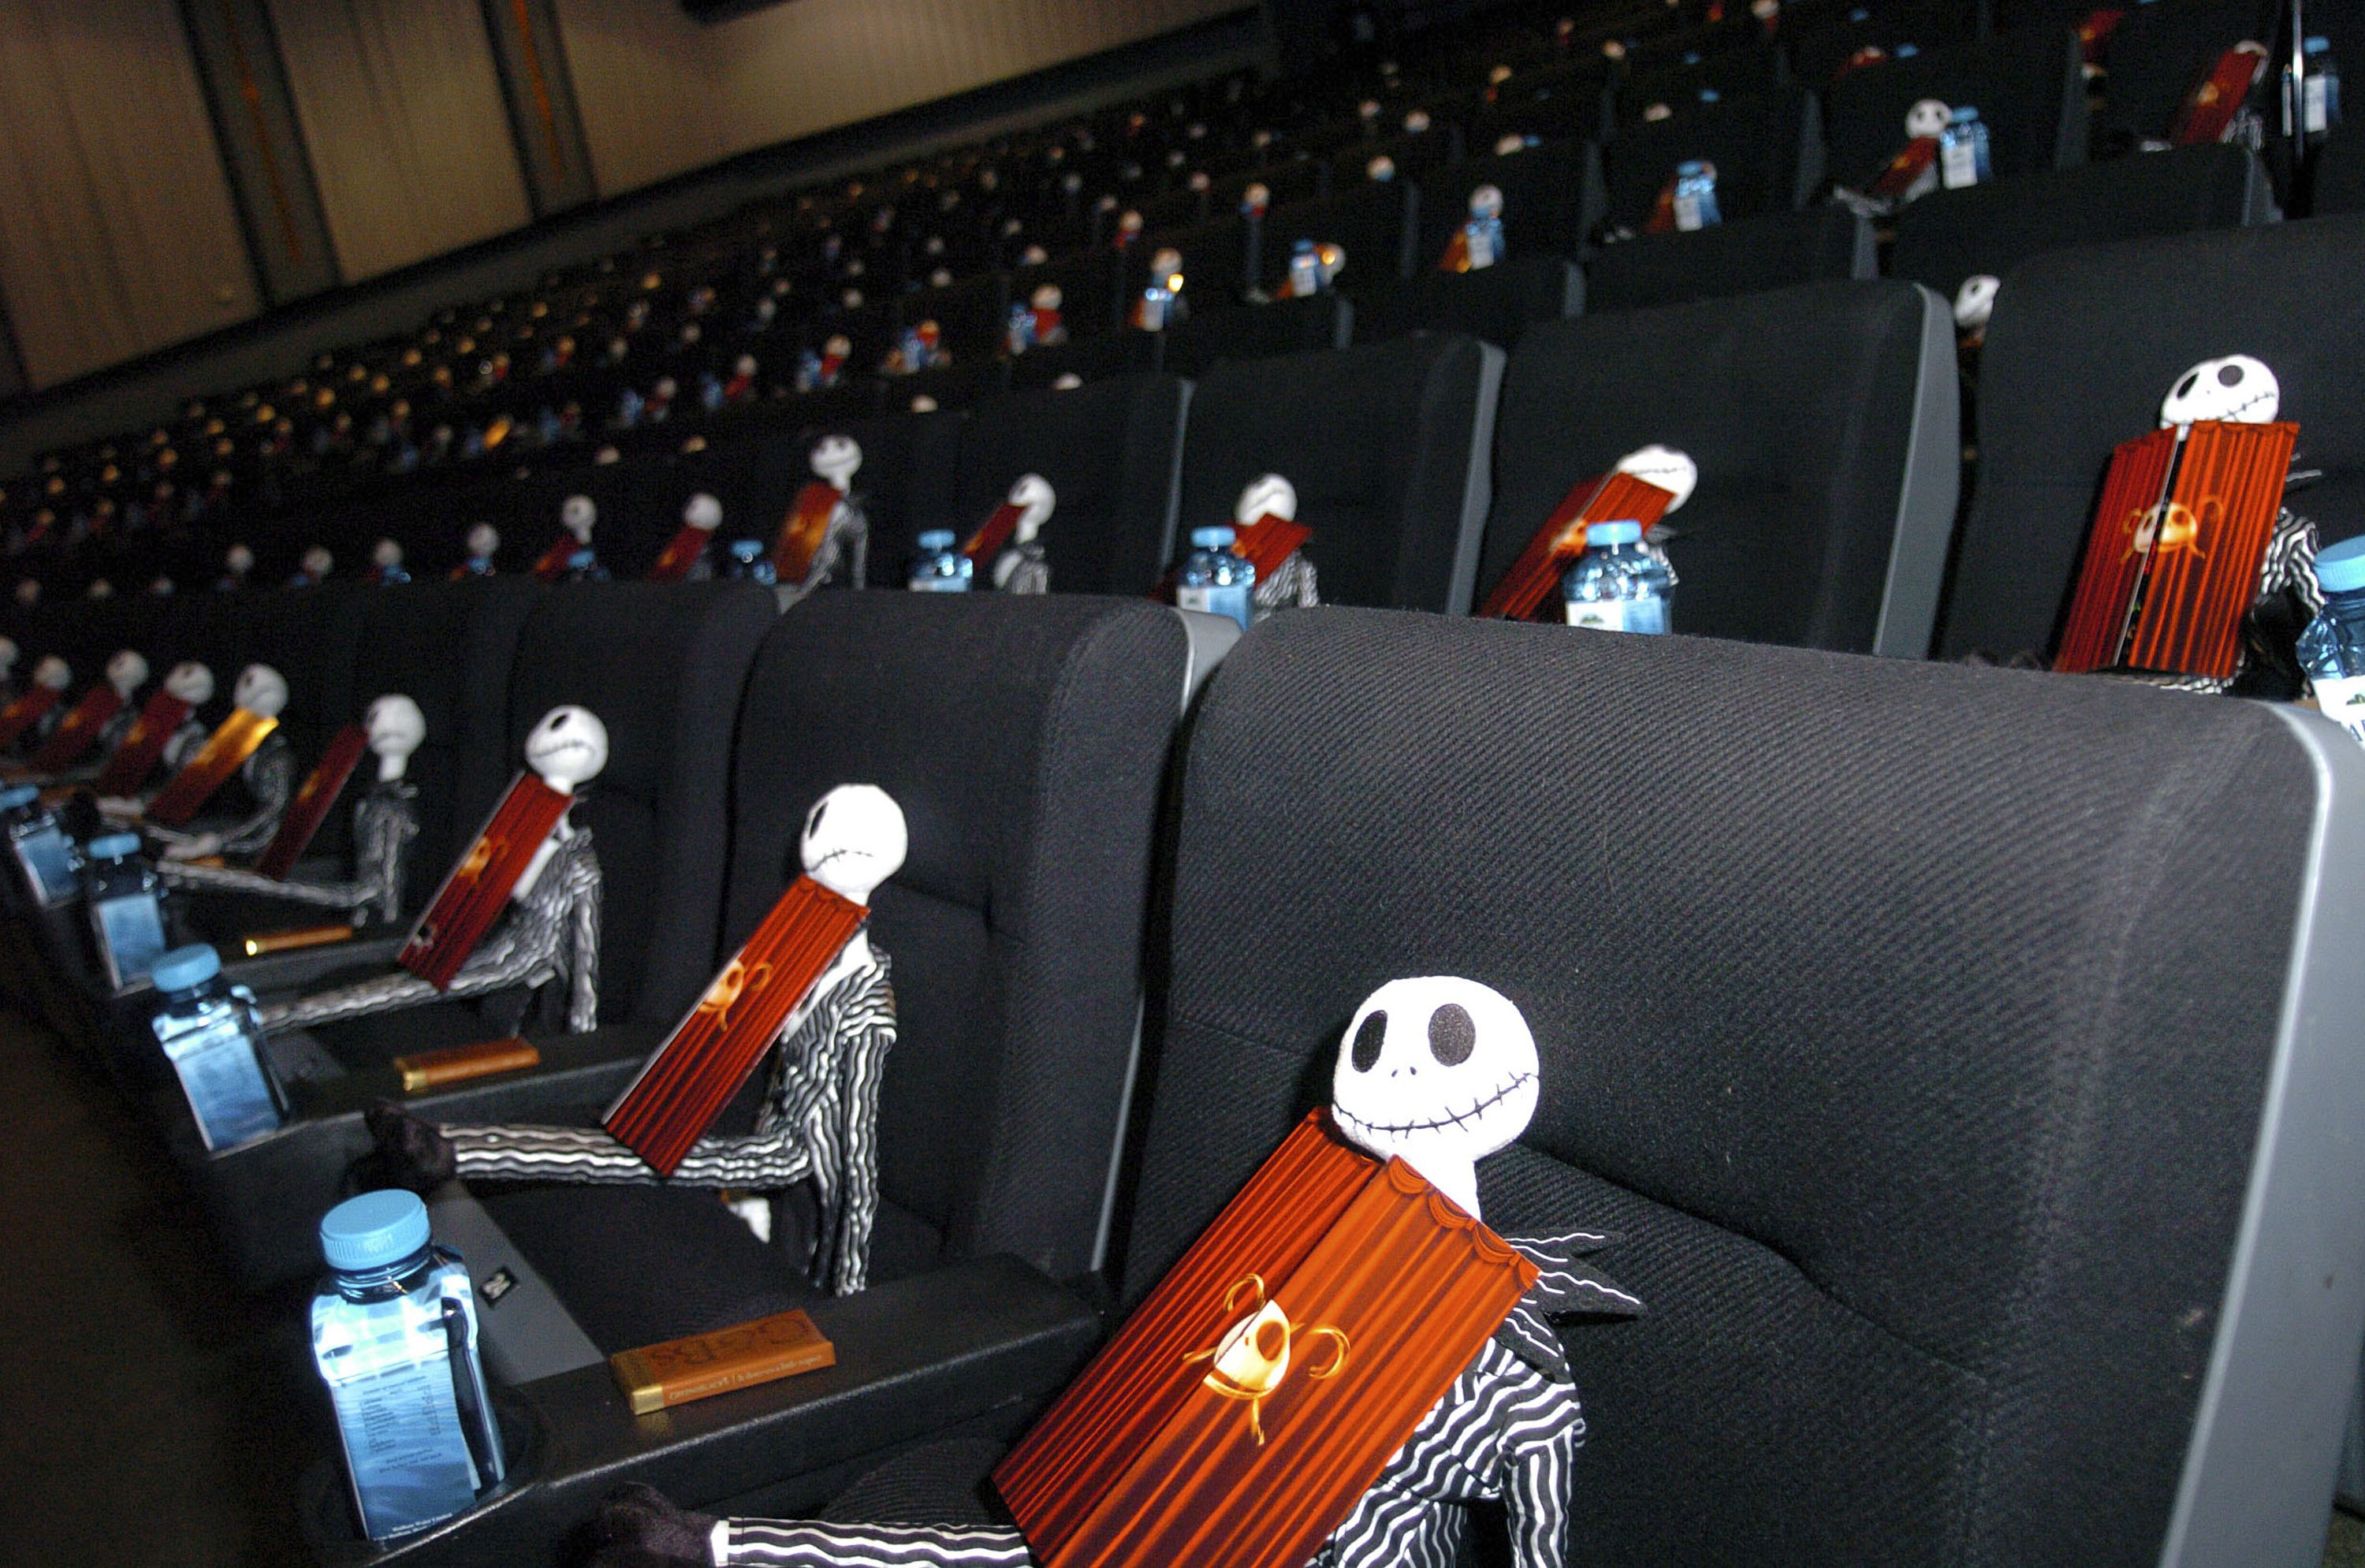 Where to Watch \'The Nightmare Before Christmas\' This Holiday Season ...